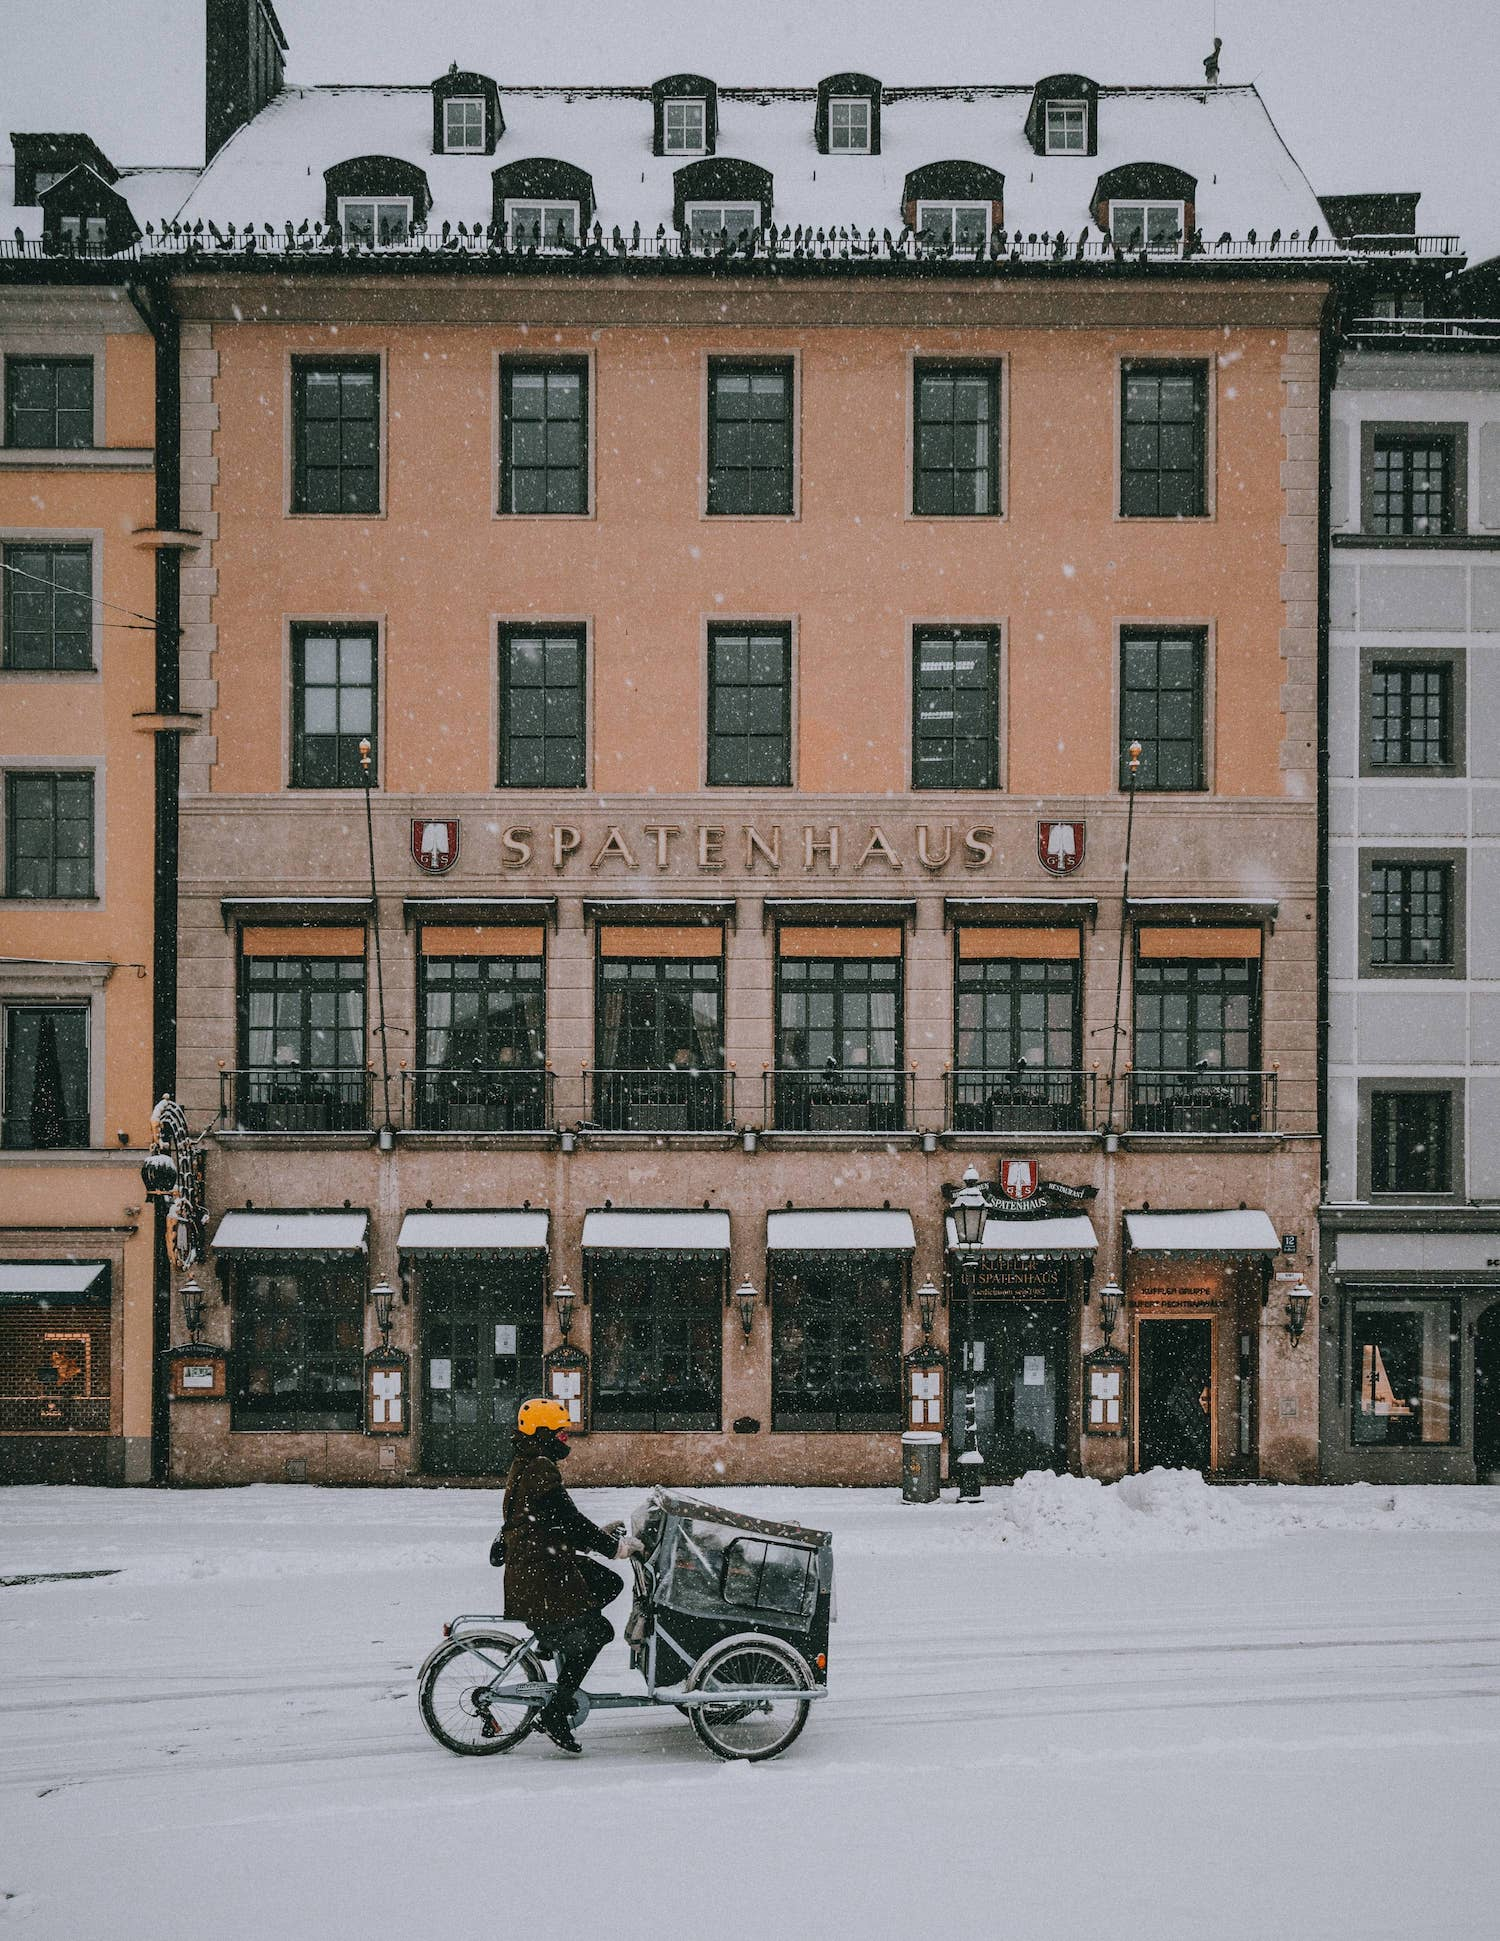 bicycling in snowy city streets